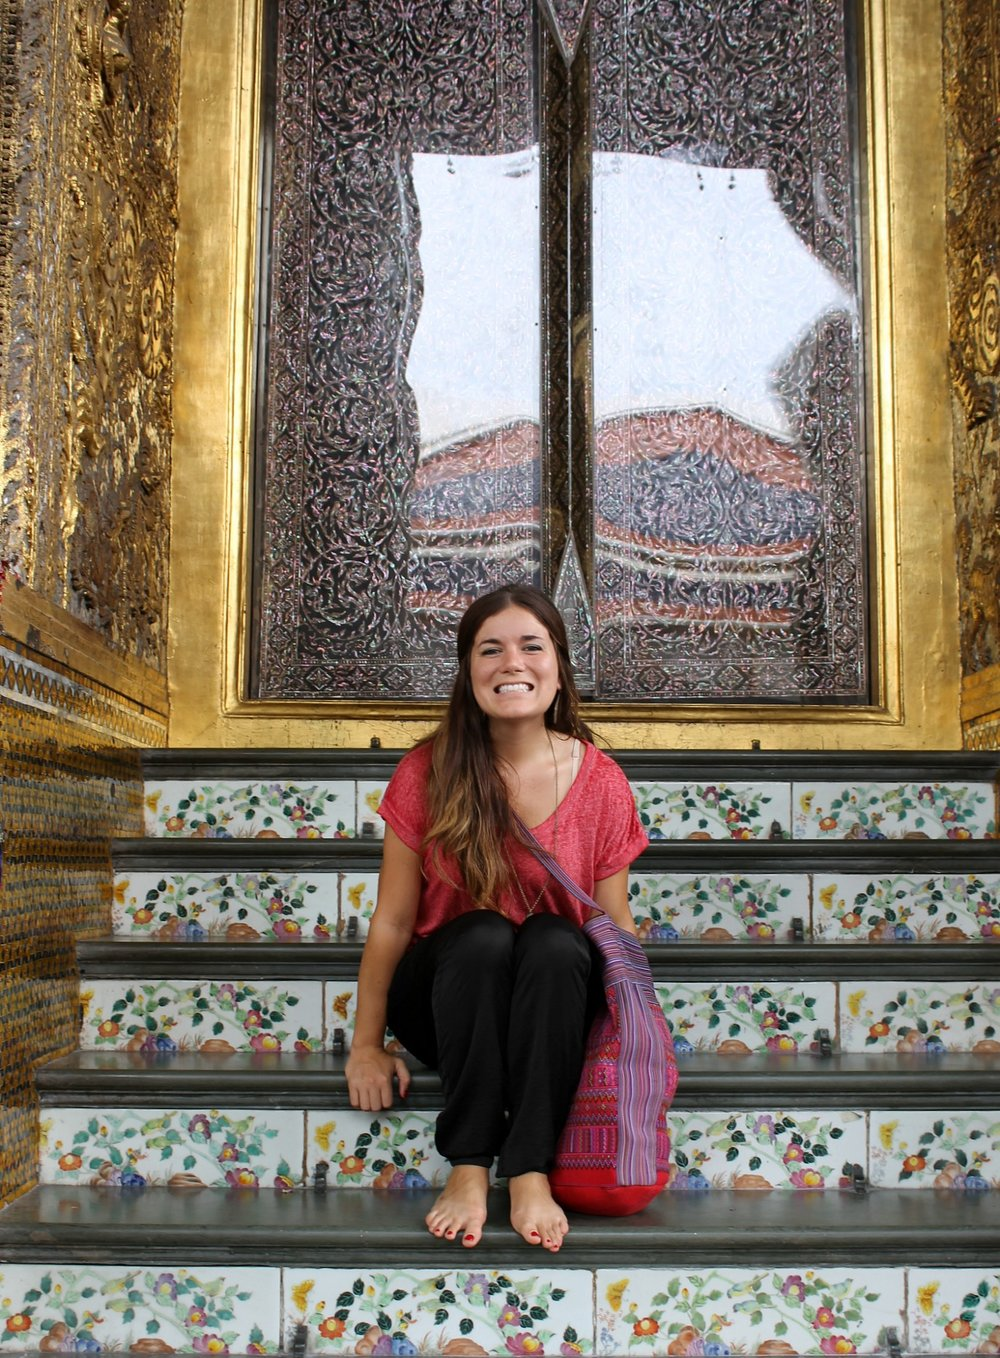 at the Golden Palace in Bangkok, Thailand in 2013